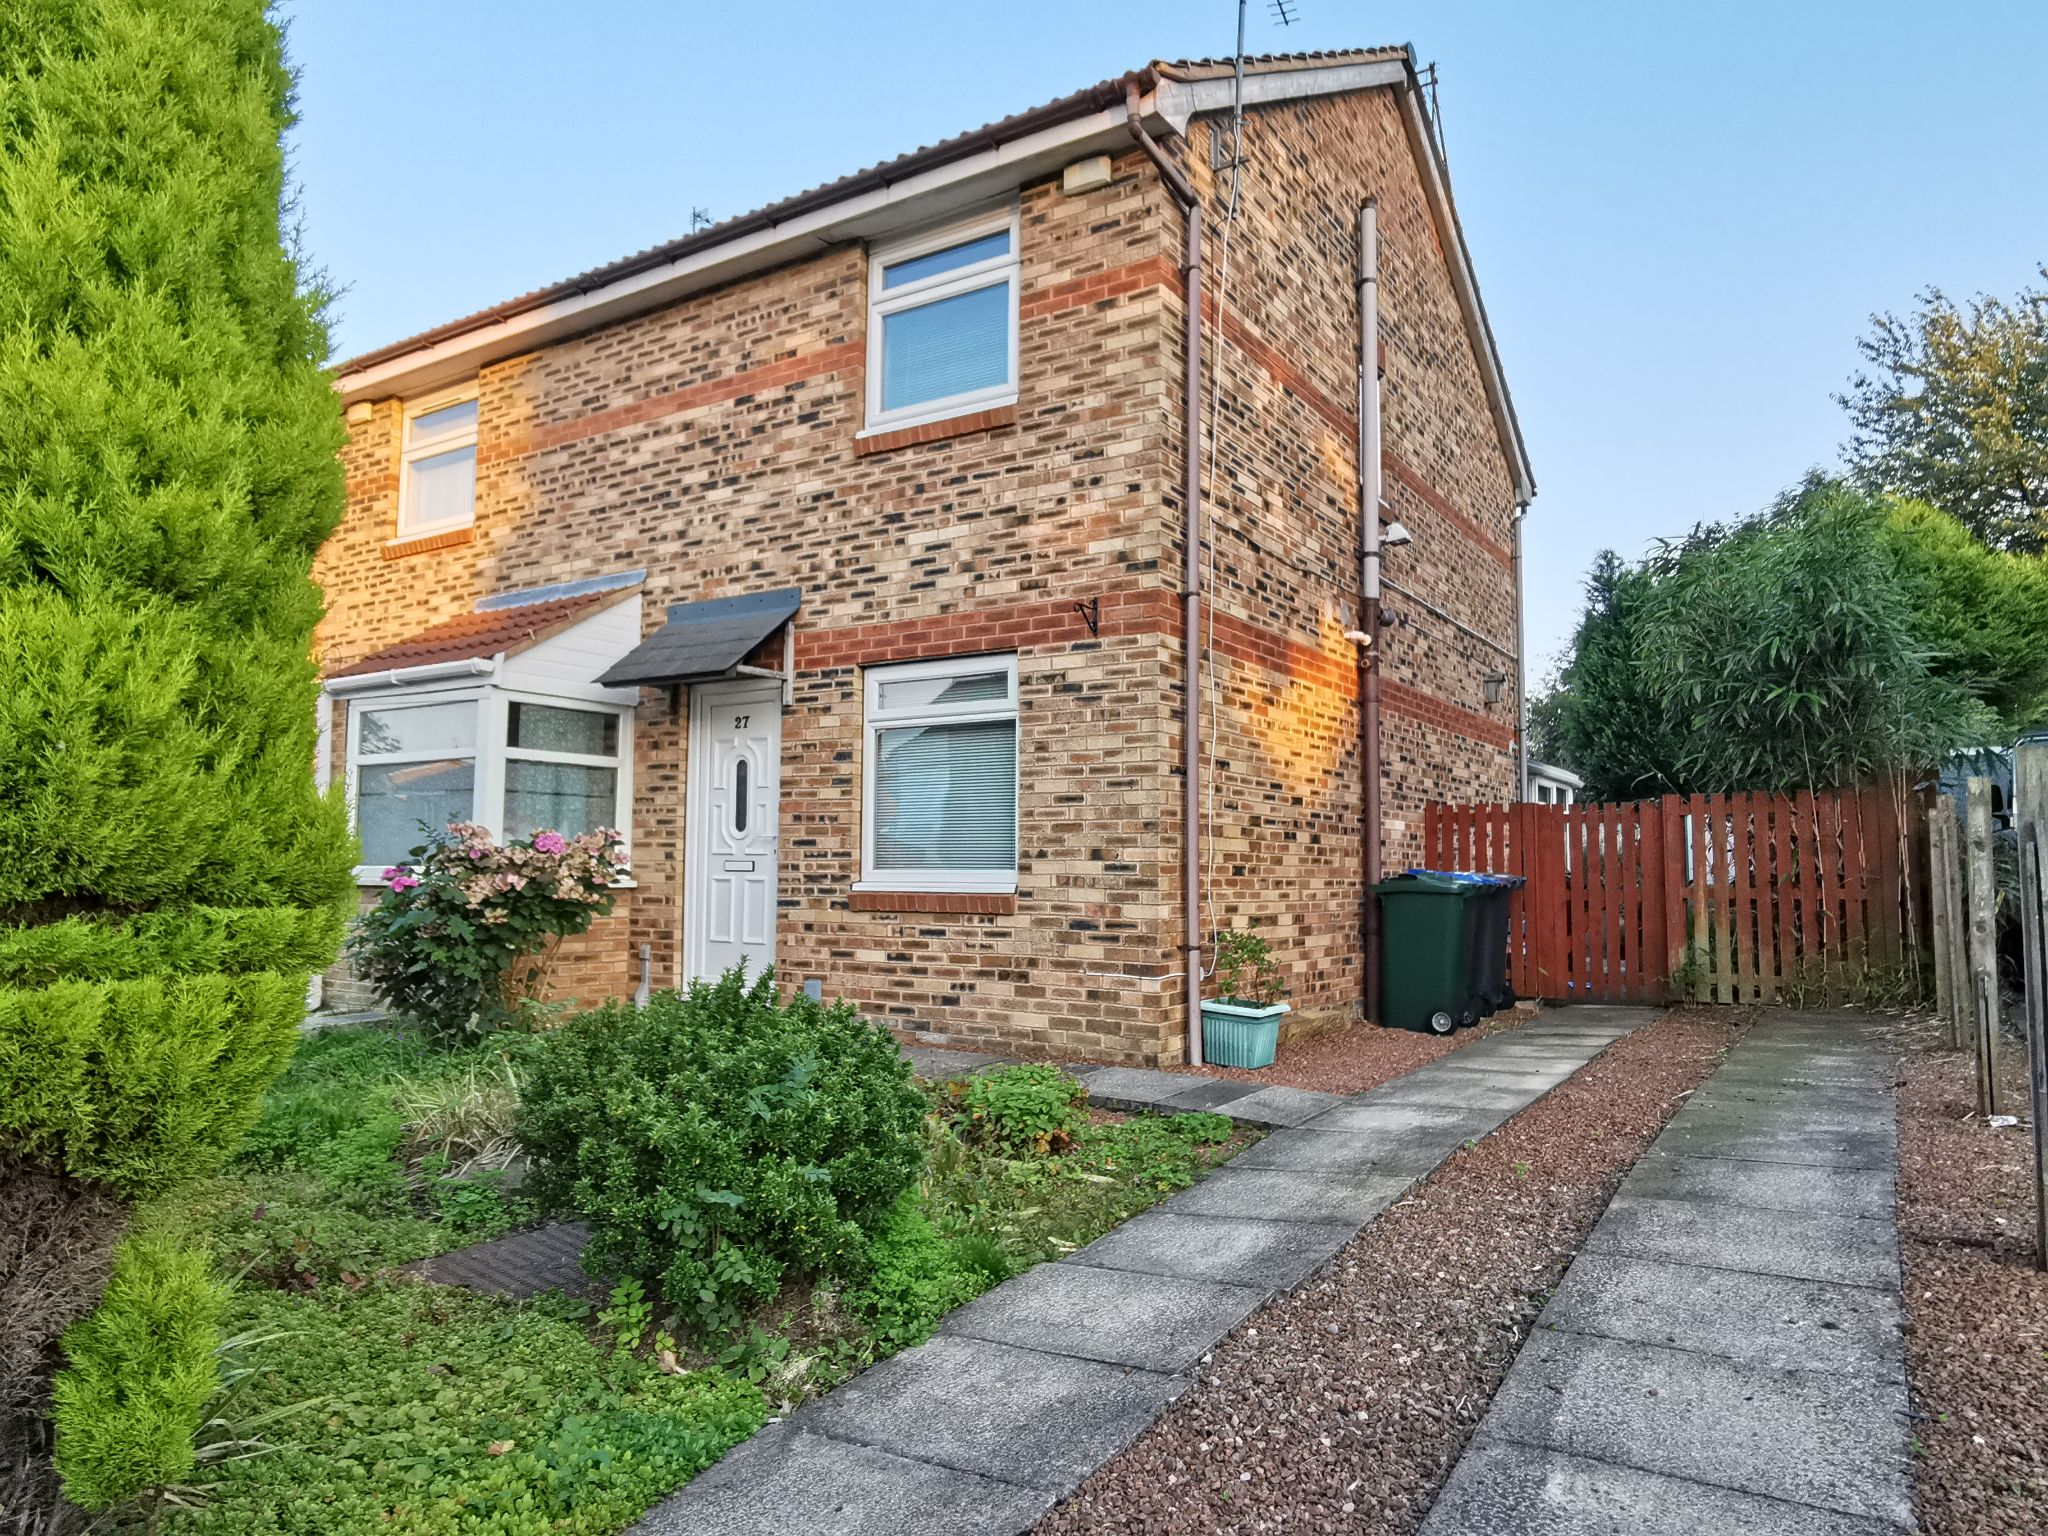 2 bedroom semi-detached house Under Offer in Bradford - Photograph 1.